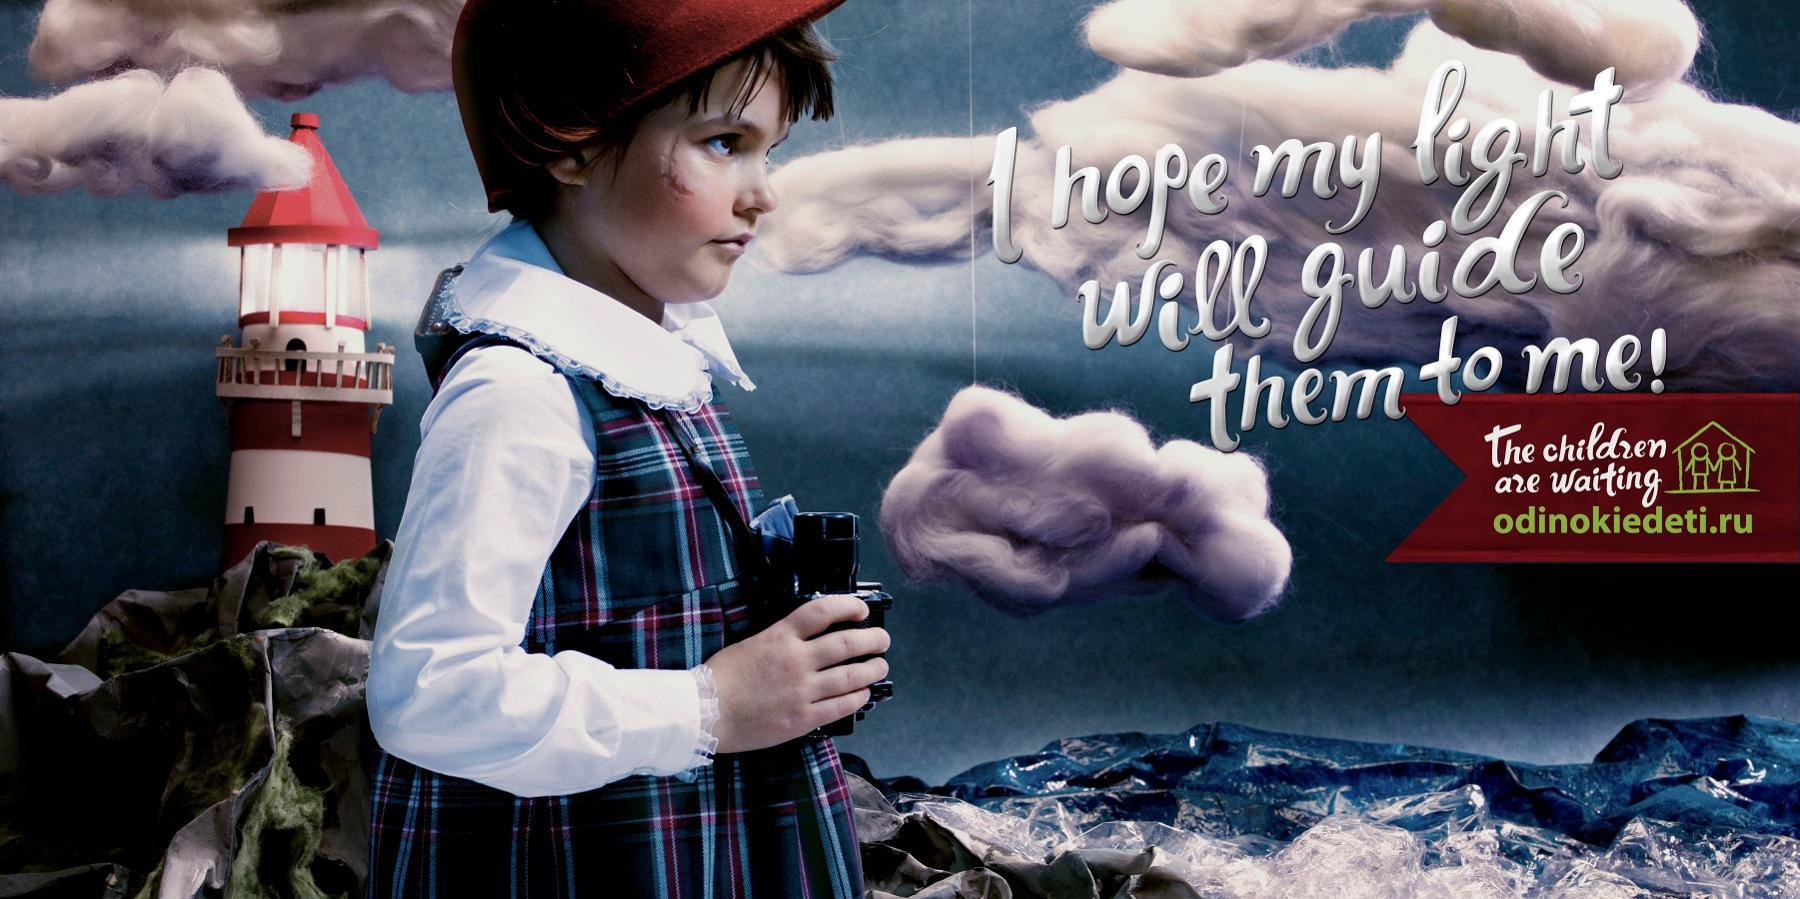 The Road to Children Outdoor Ad -  The children are waiting, 3